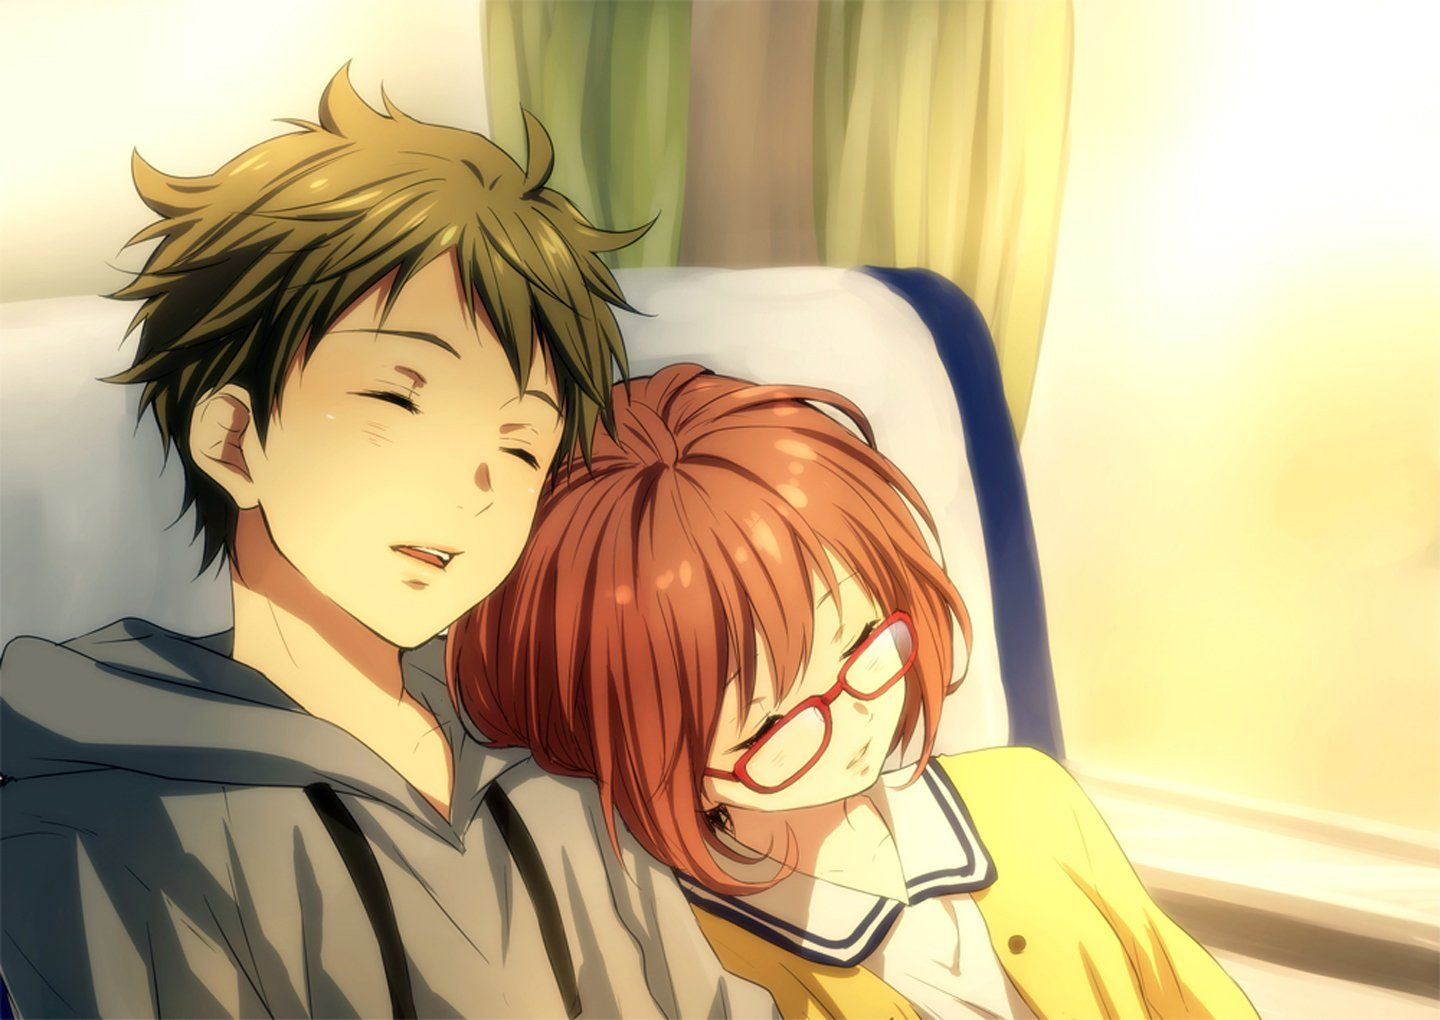 Anime couple in bed images